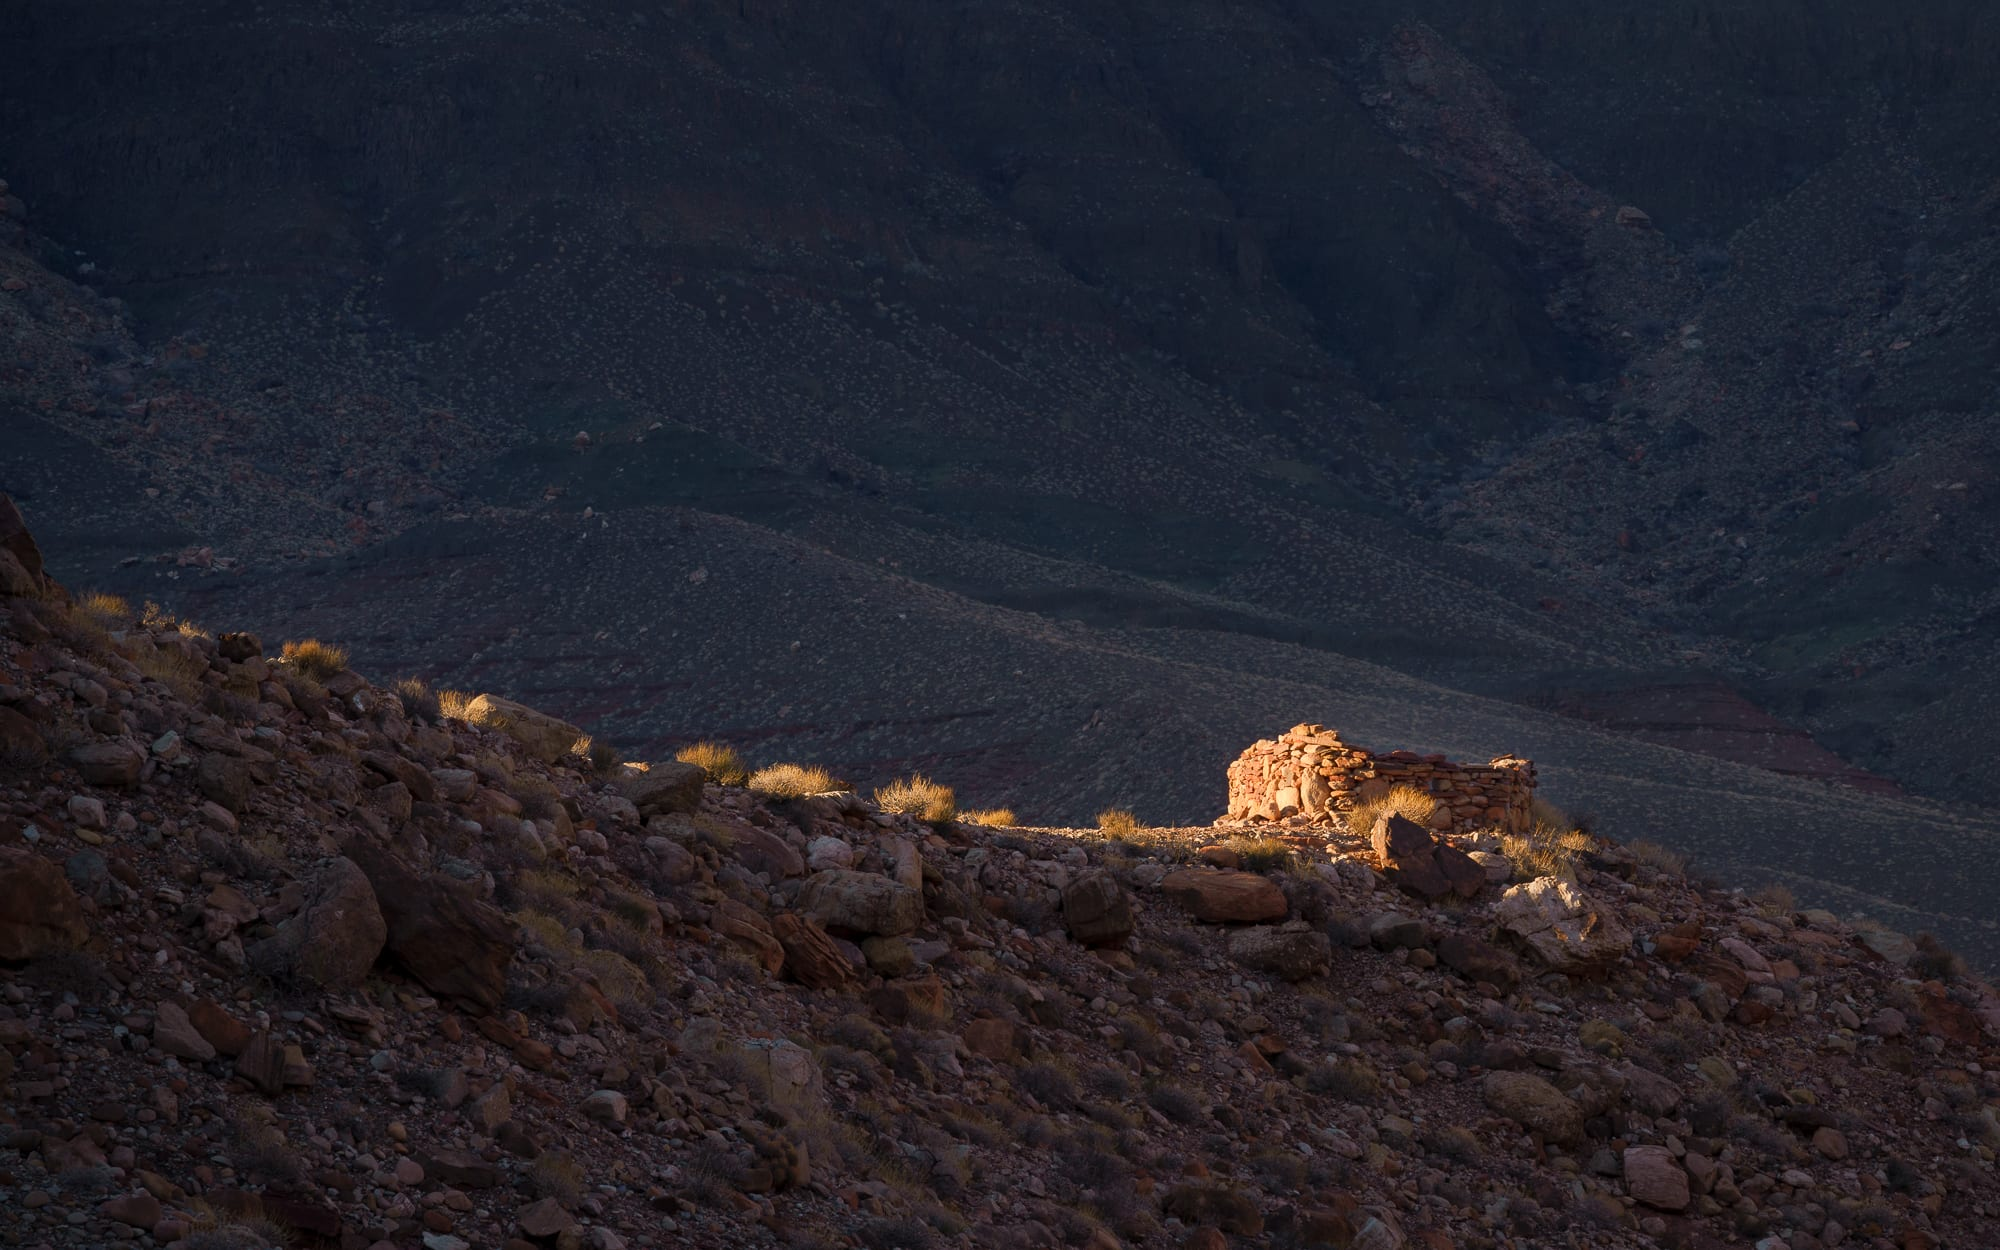 Sunlight hits the hilltop and lights up an ancestral Pueblo structure in the Grand Canyon